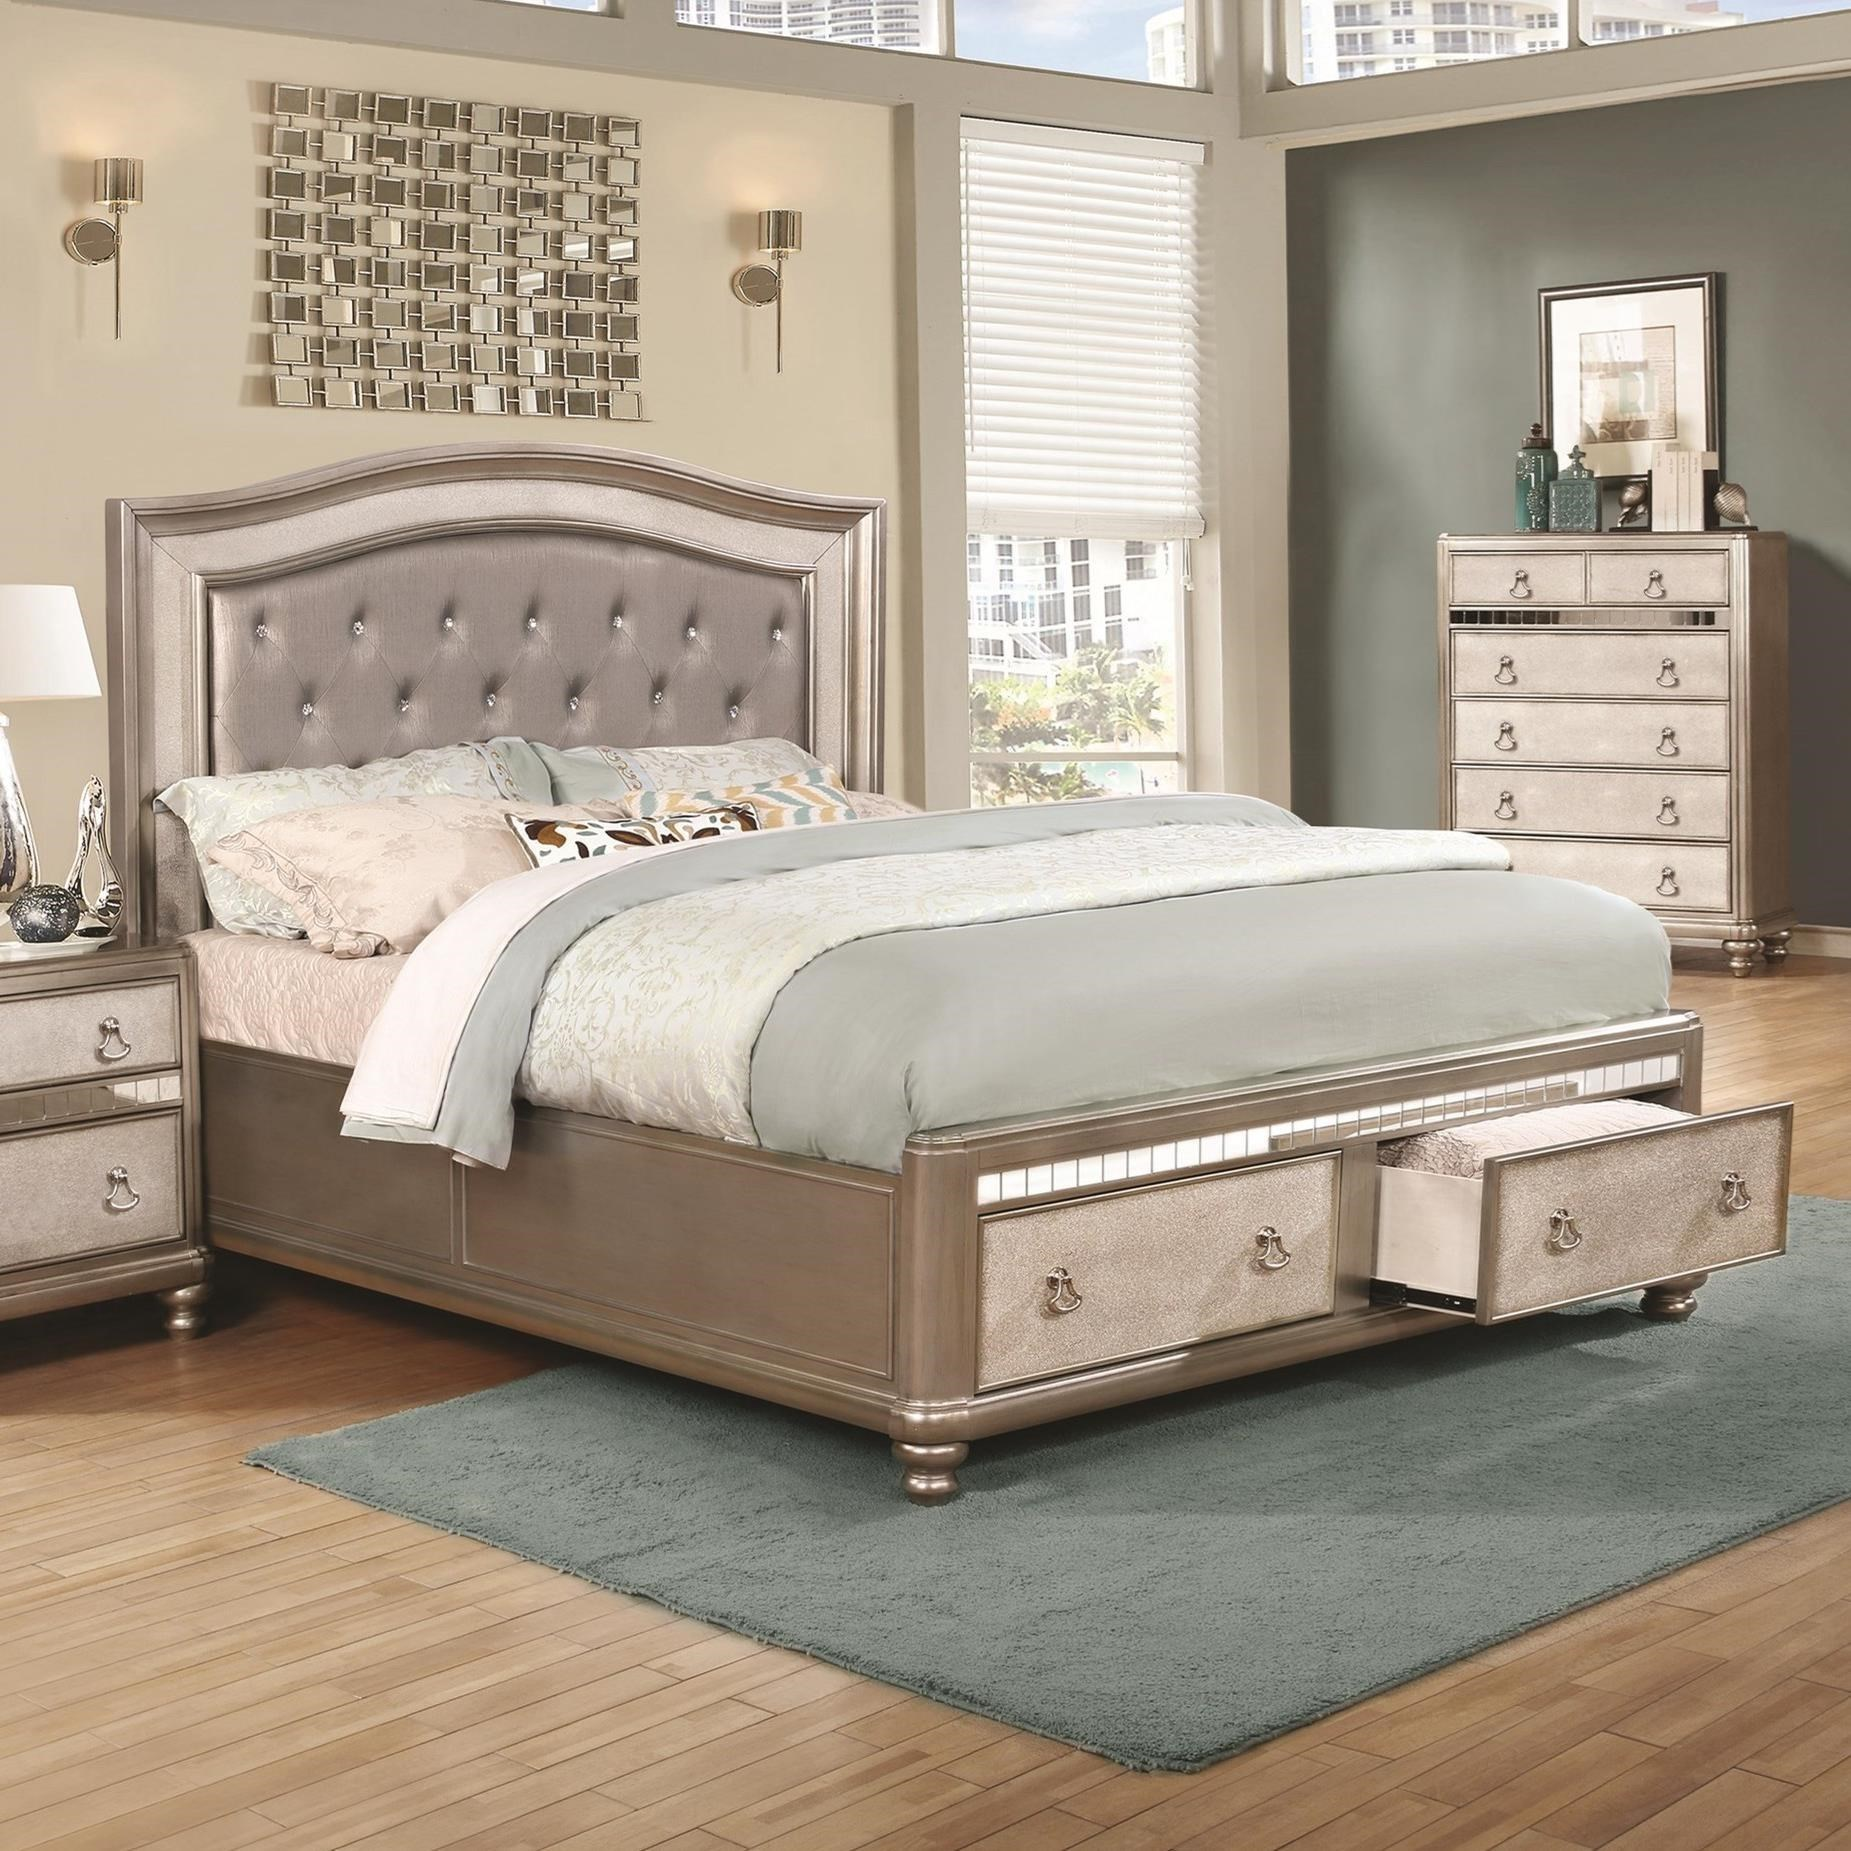 Bling Game Upholstered California King Bed by Coaster at Northeast Factory Direct